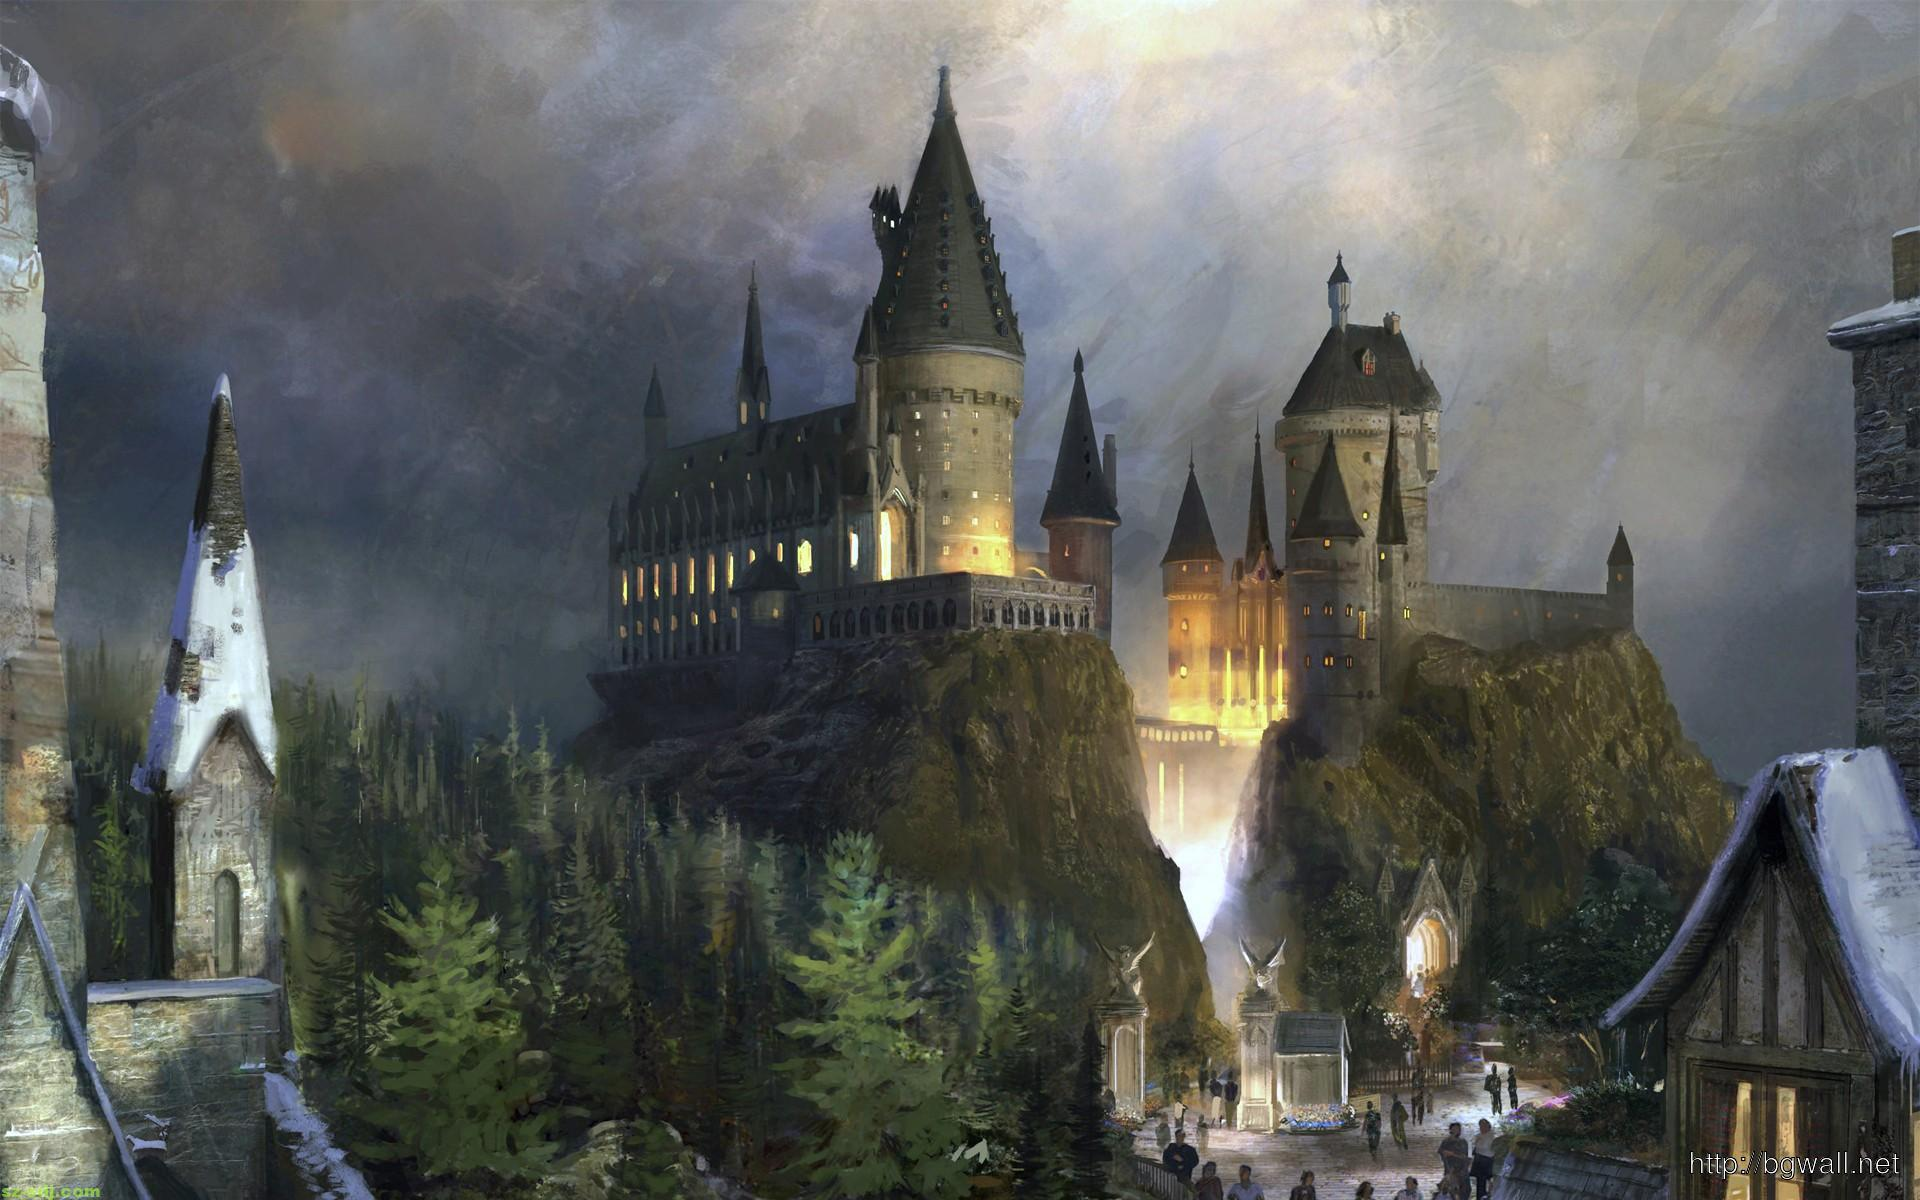 Amazing Wallpaper High Resolution Fantasy - fantasy-castle-wallpaper-high-resolution  Snapshot_469891.jpg